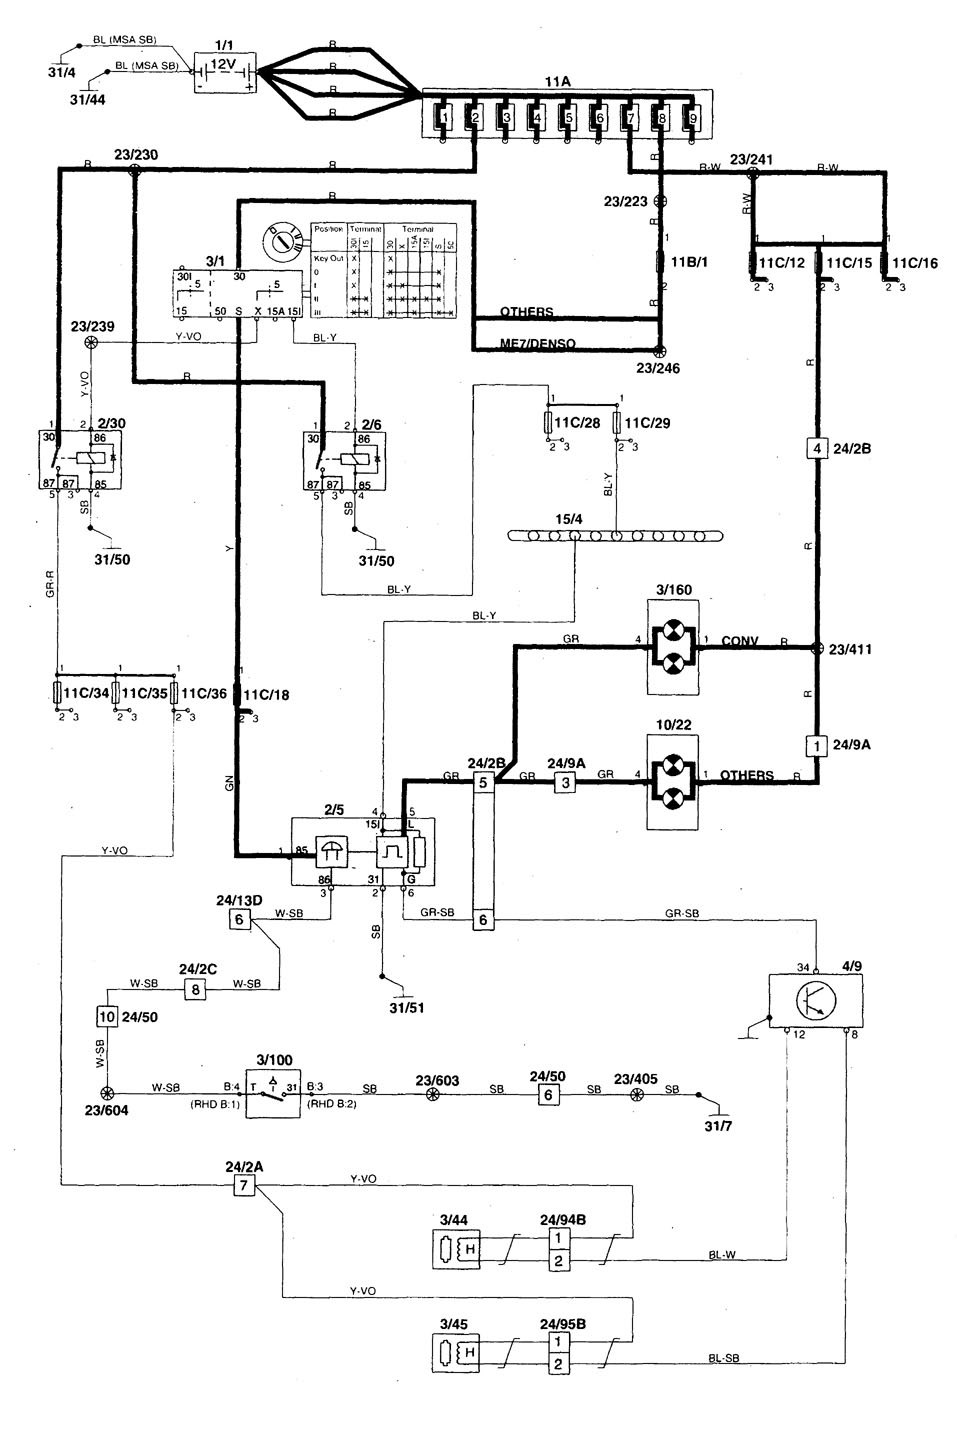 Beautiful 1991 Volvo 740 Wiring company flow chart